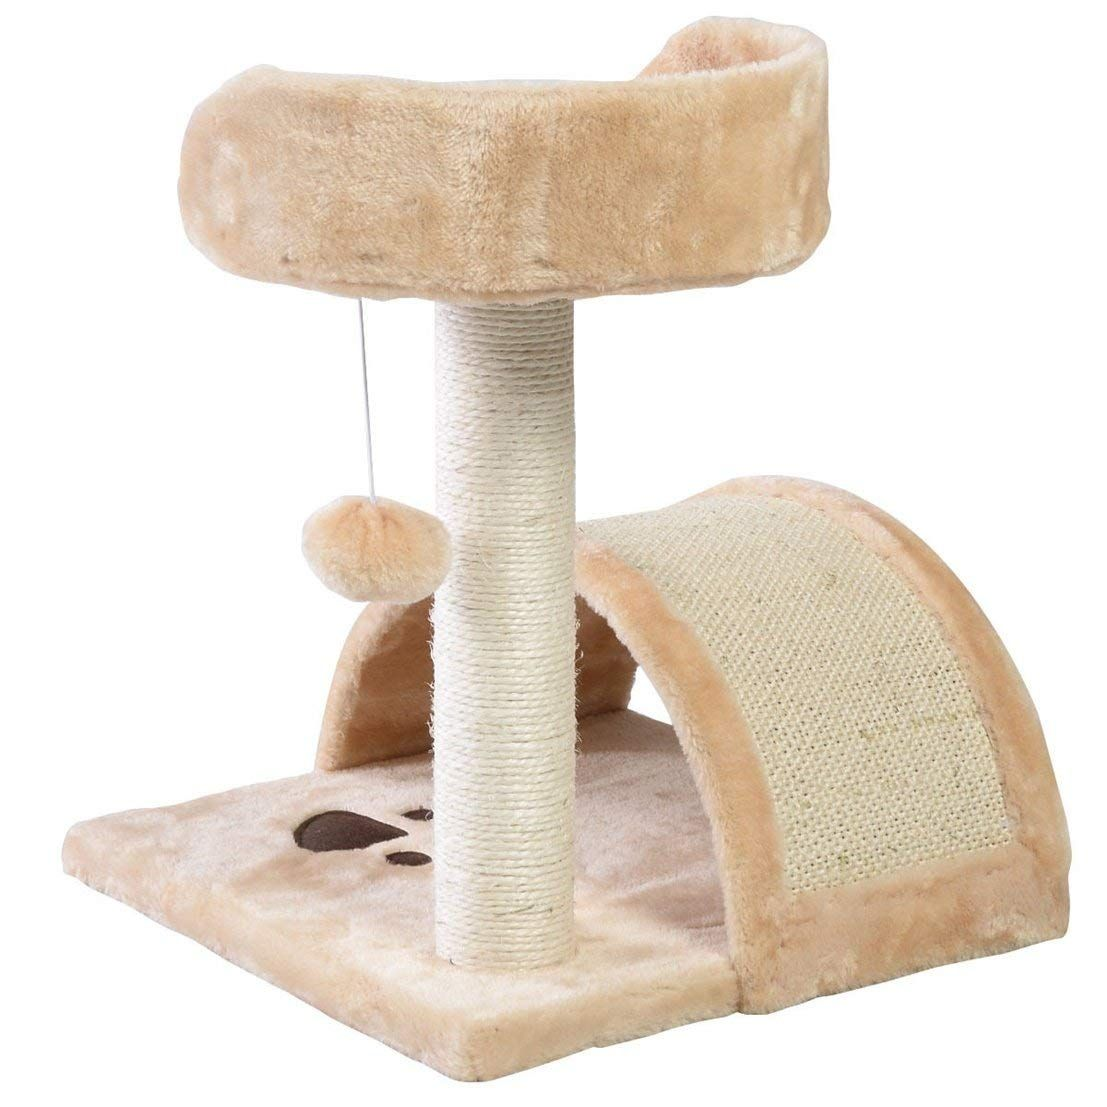 Important Por 18 Cat Tree Furniture Kittens Pet Play Climb And Jump Color Beige Click Image For More Details This Is An Affiliate Link Catcare